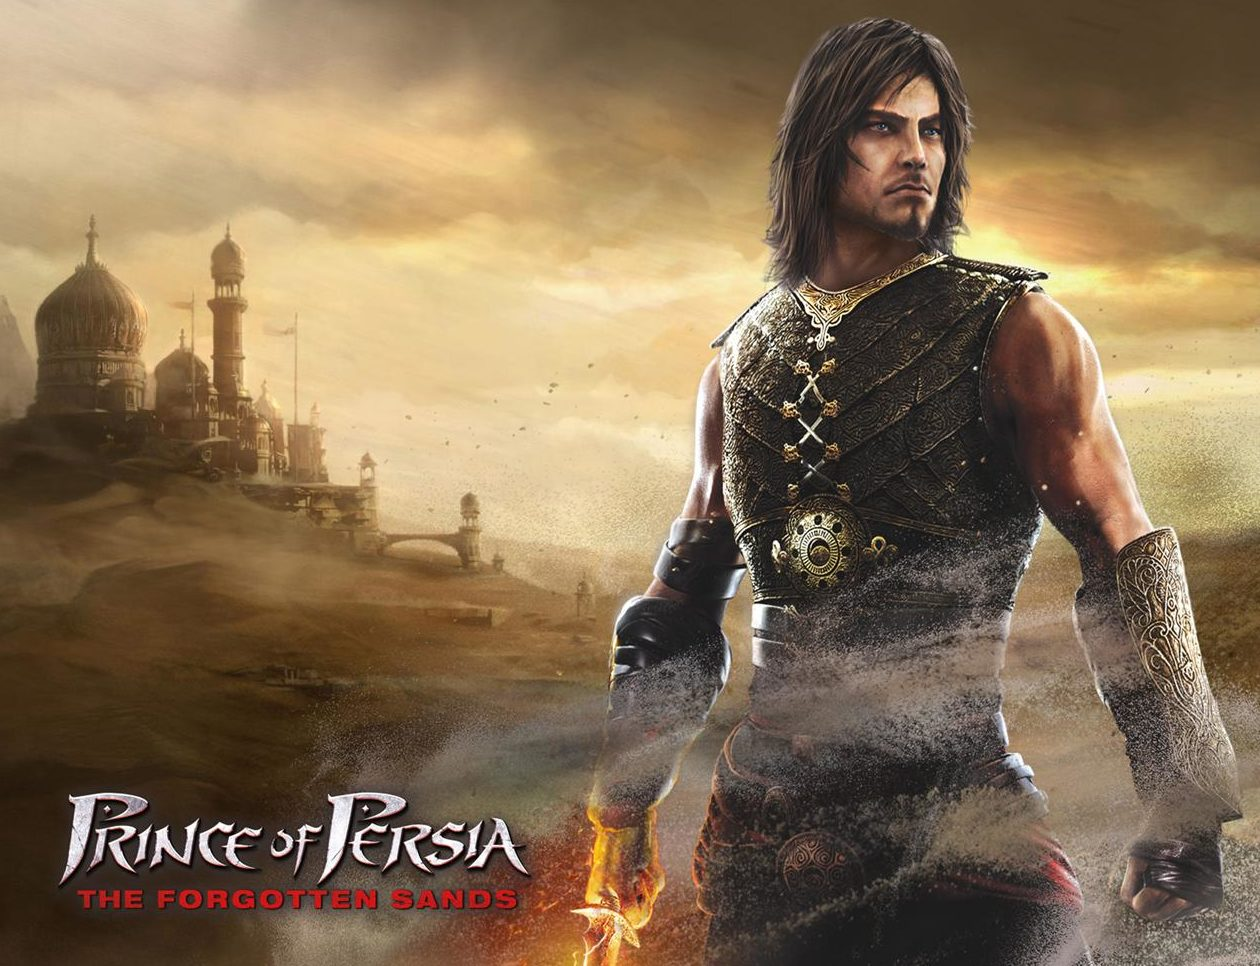 Prince of Persia the forgotten sands – PC